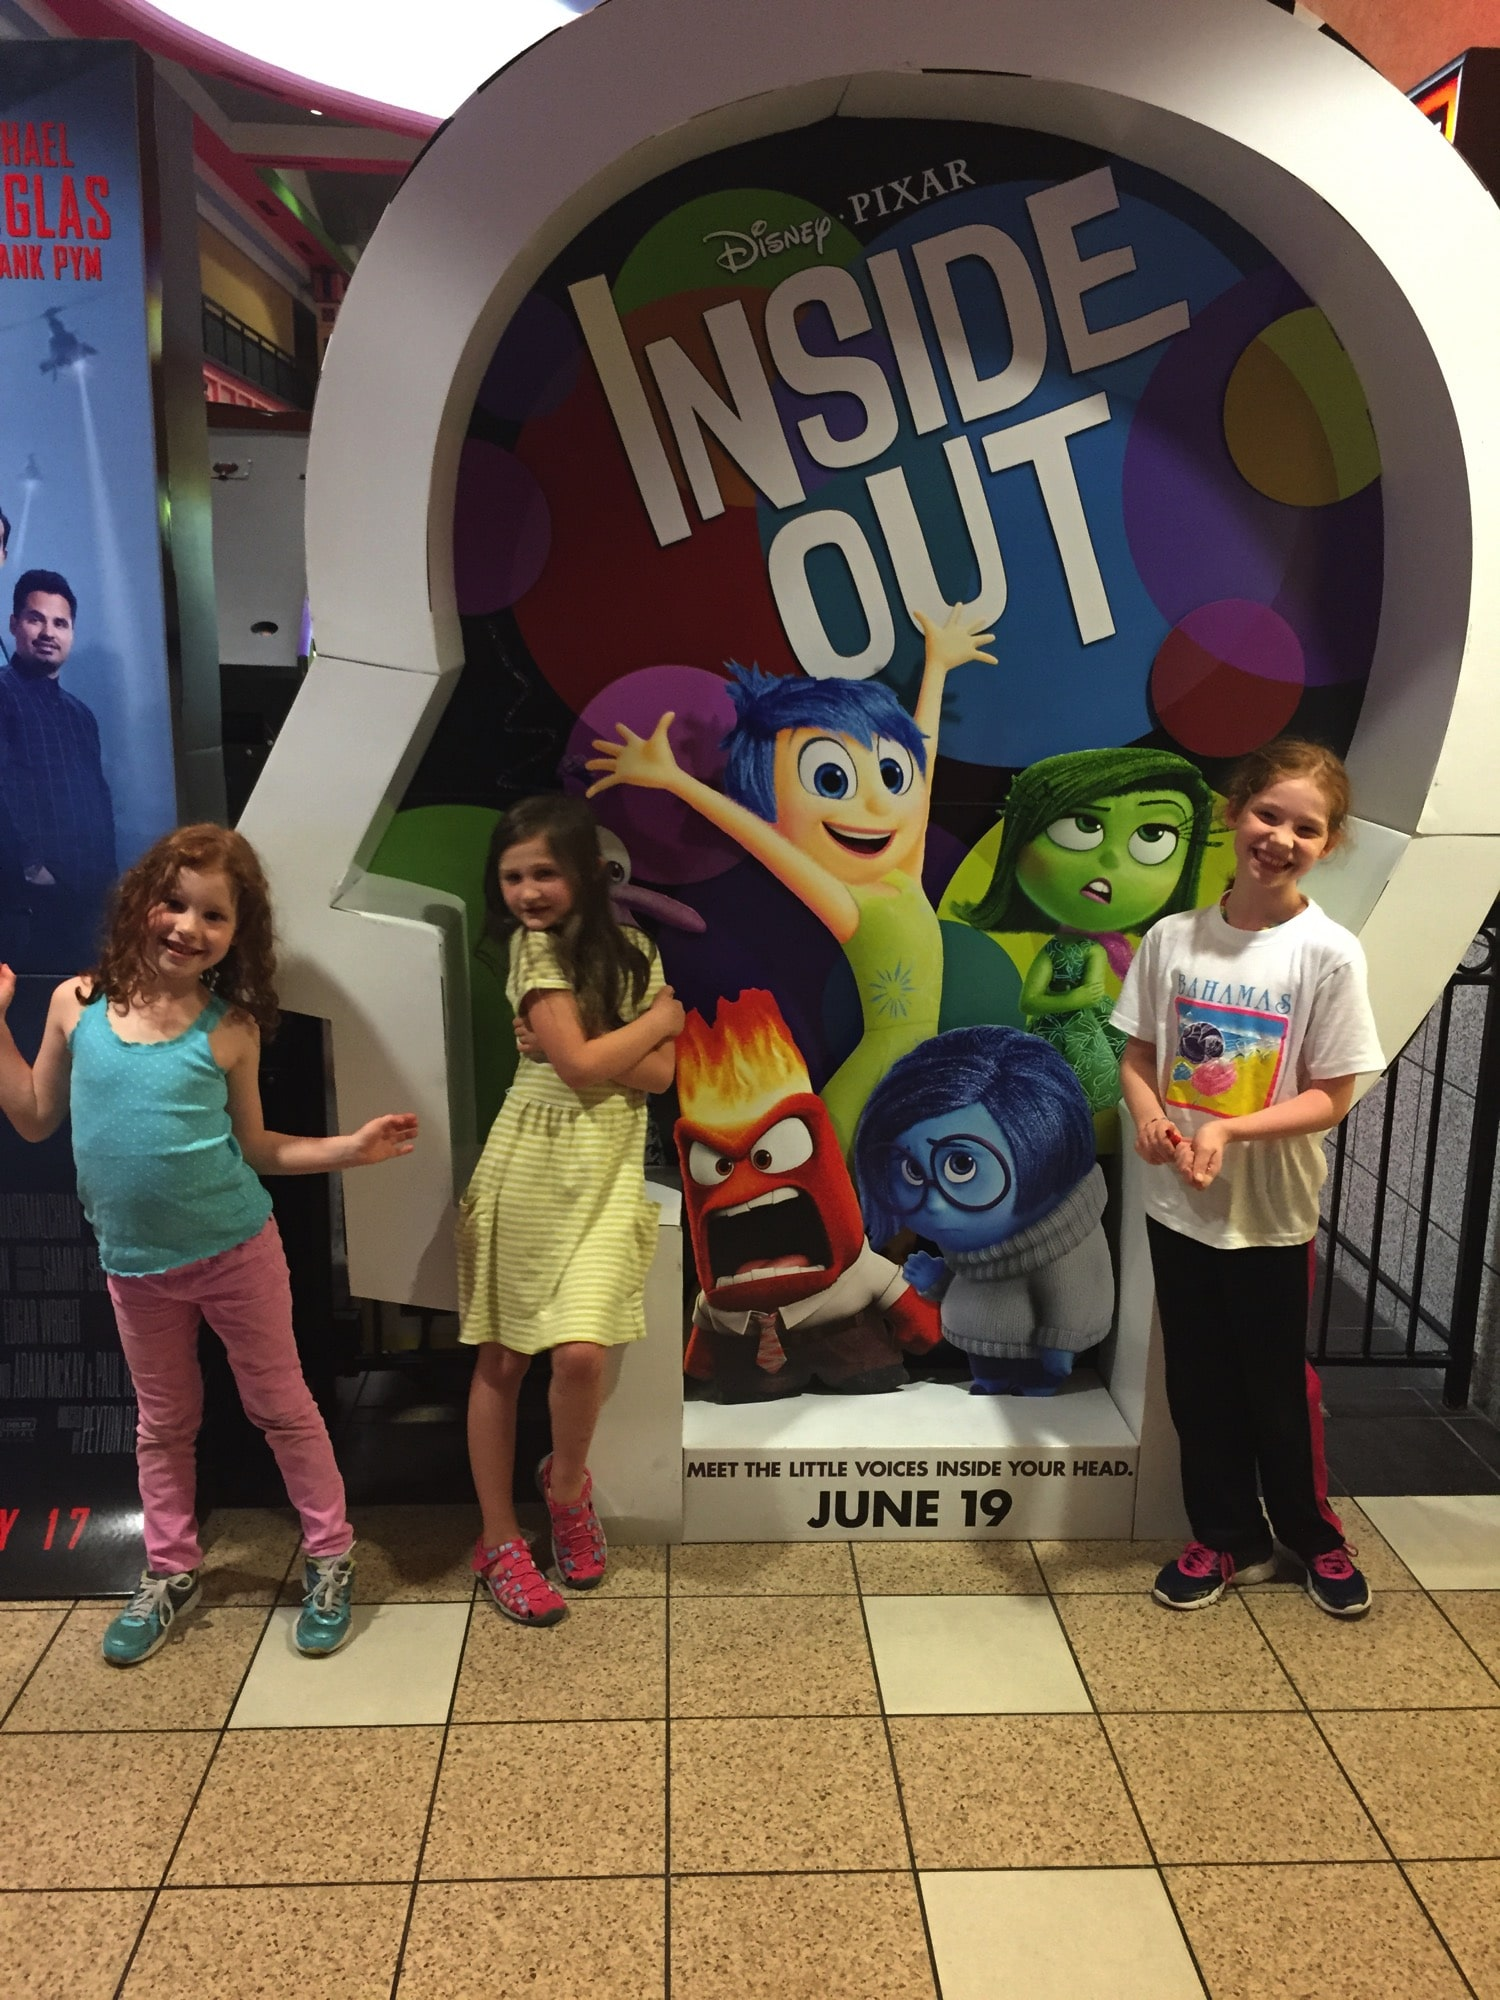 Disney's Inside Out a review and notes from jonas rivera